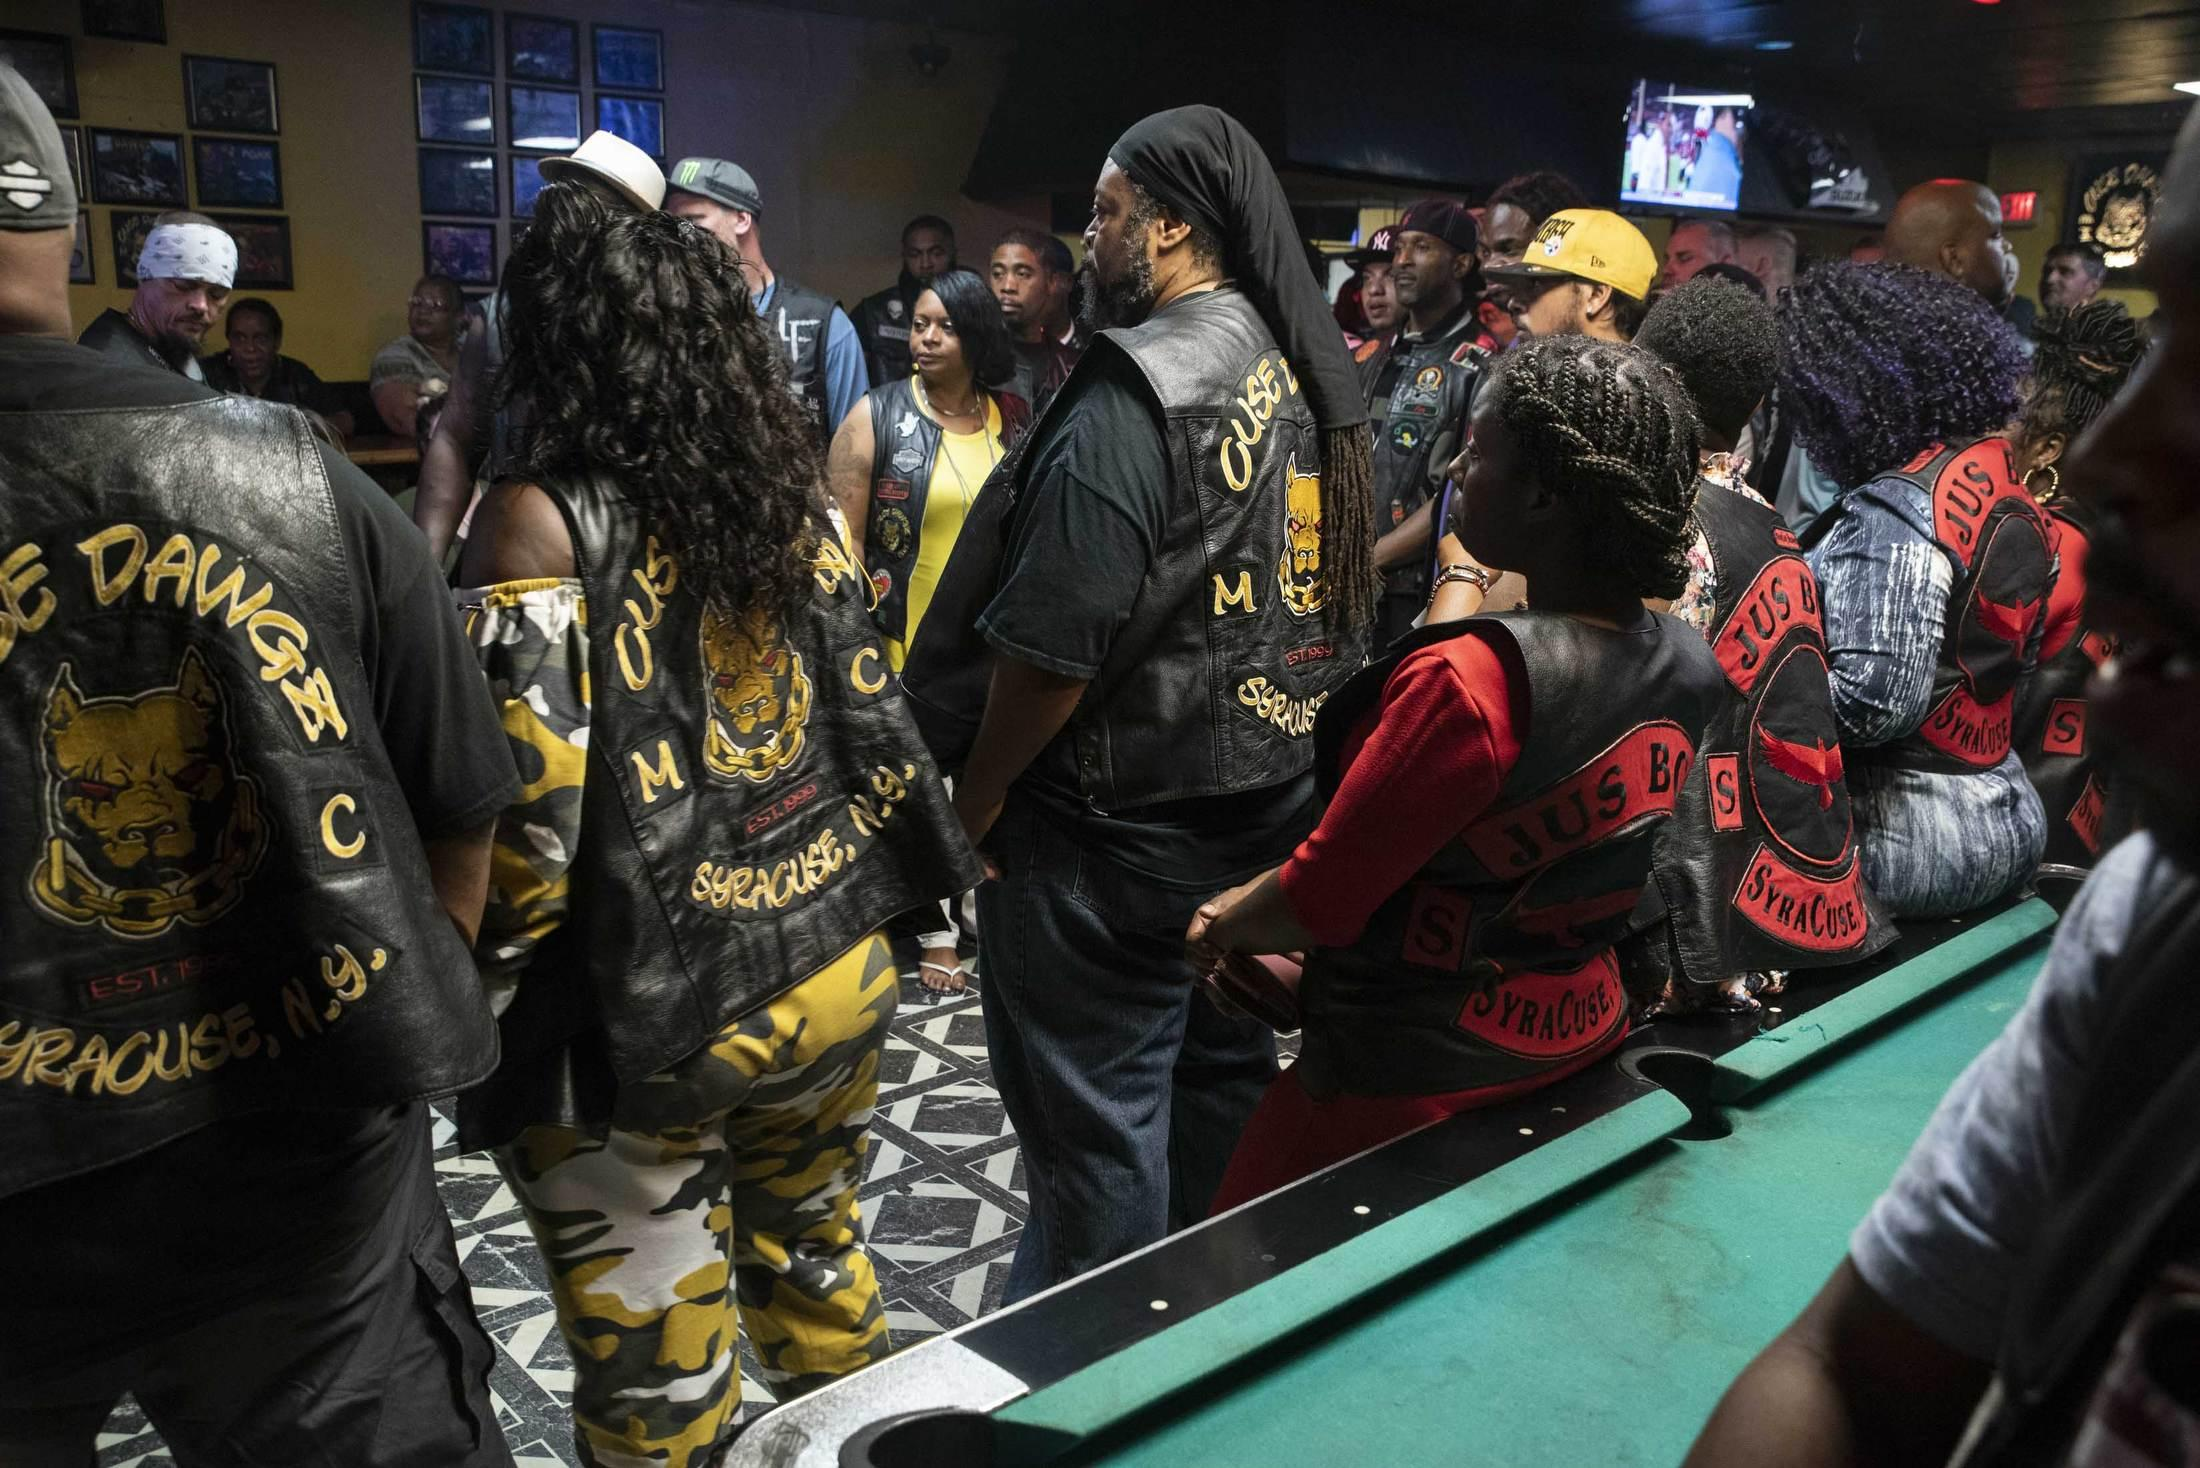 The Cuse Dawgz Motorcycle Club gathers with friends and family to celebrate their 19th anniversary.